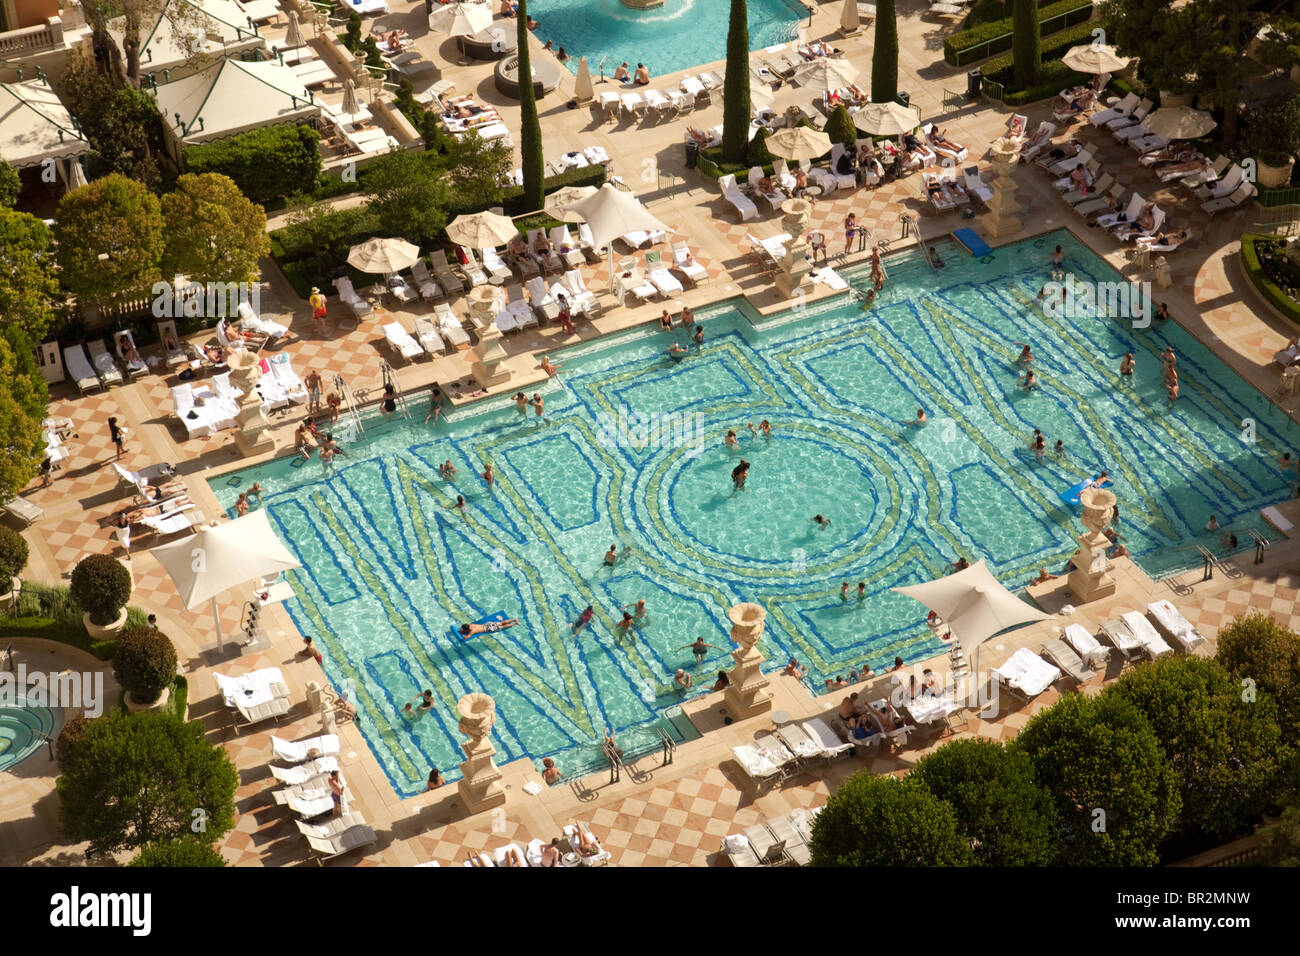 The Swimming Pools At The Bellagio Hotel Las Vegas Usa Stock Photo Royalty Free Image